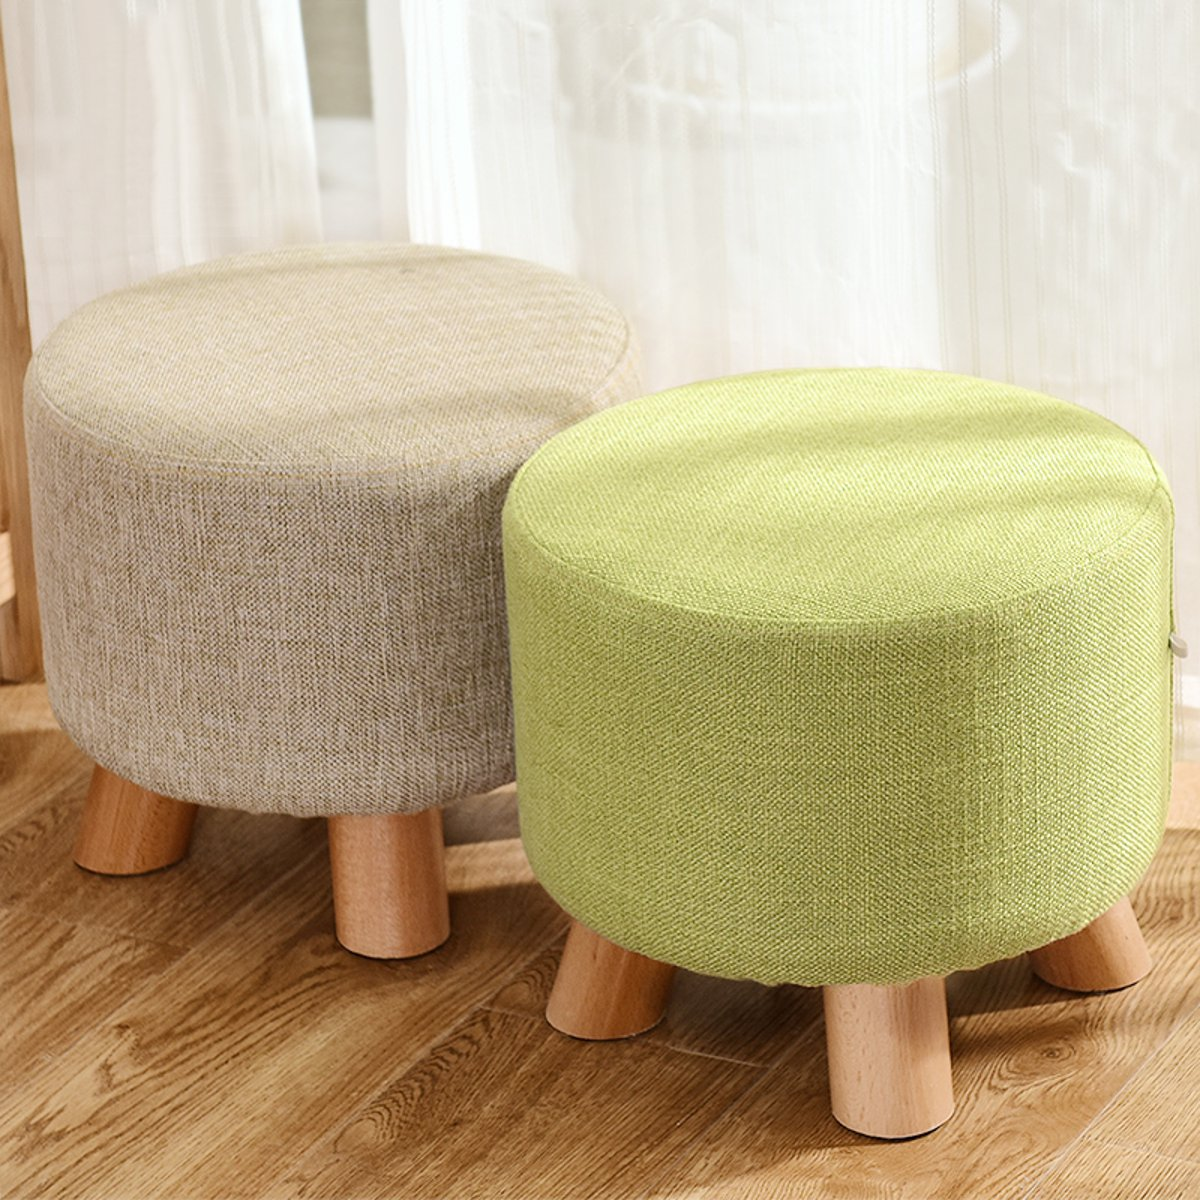 Modern Round Solid Pine Wooden Footstool Ottomans Nordic Pouffe Stool Upholstered Fabric Foot Rest Padded Seat Living Room Decor